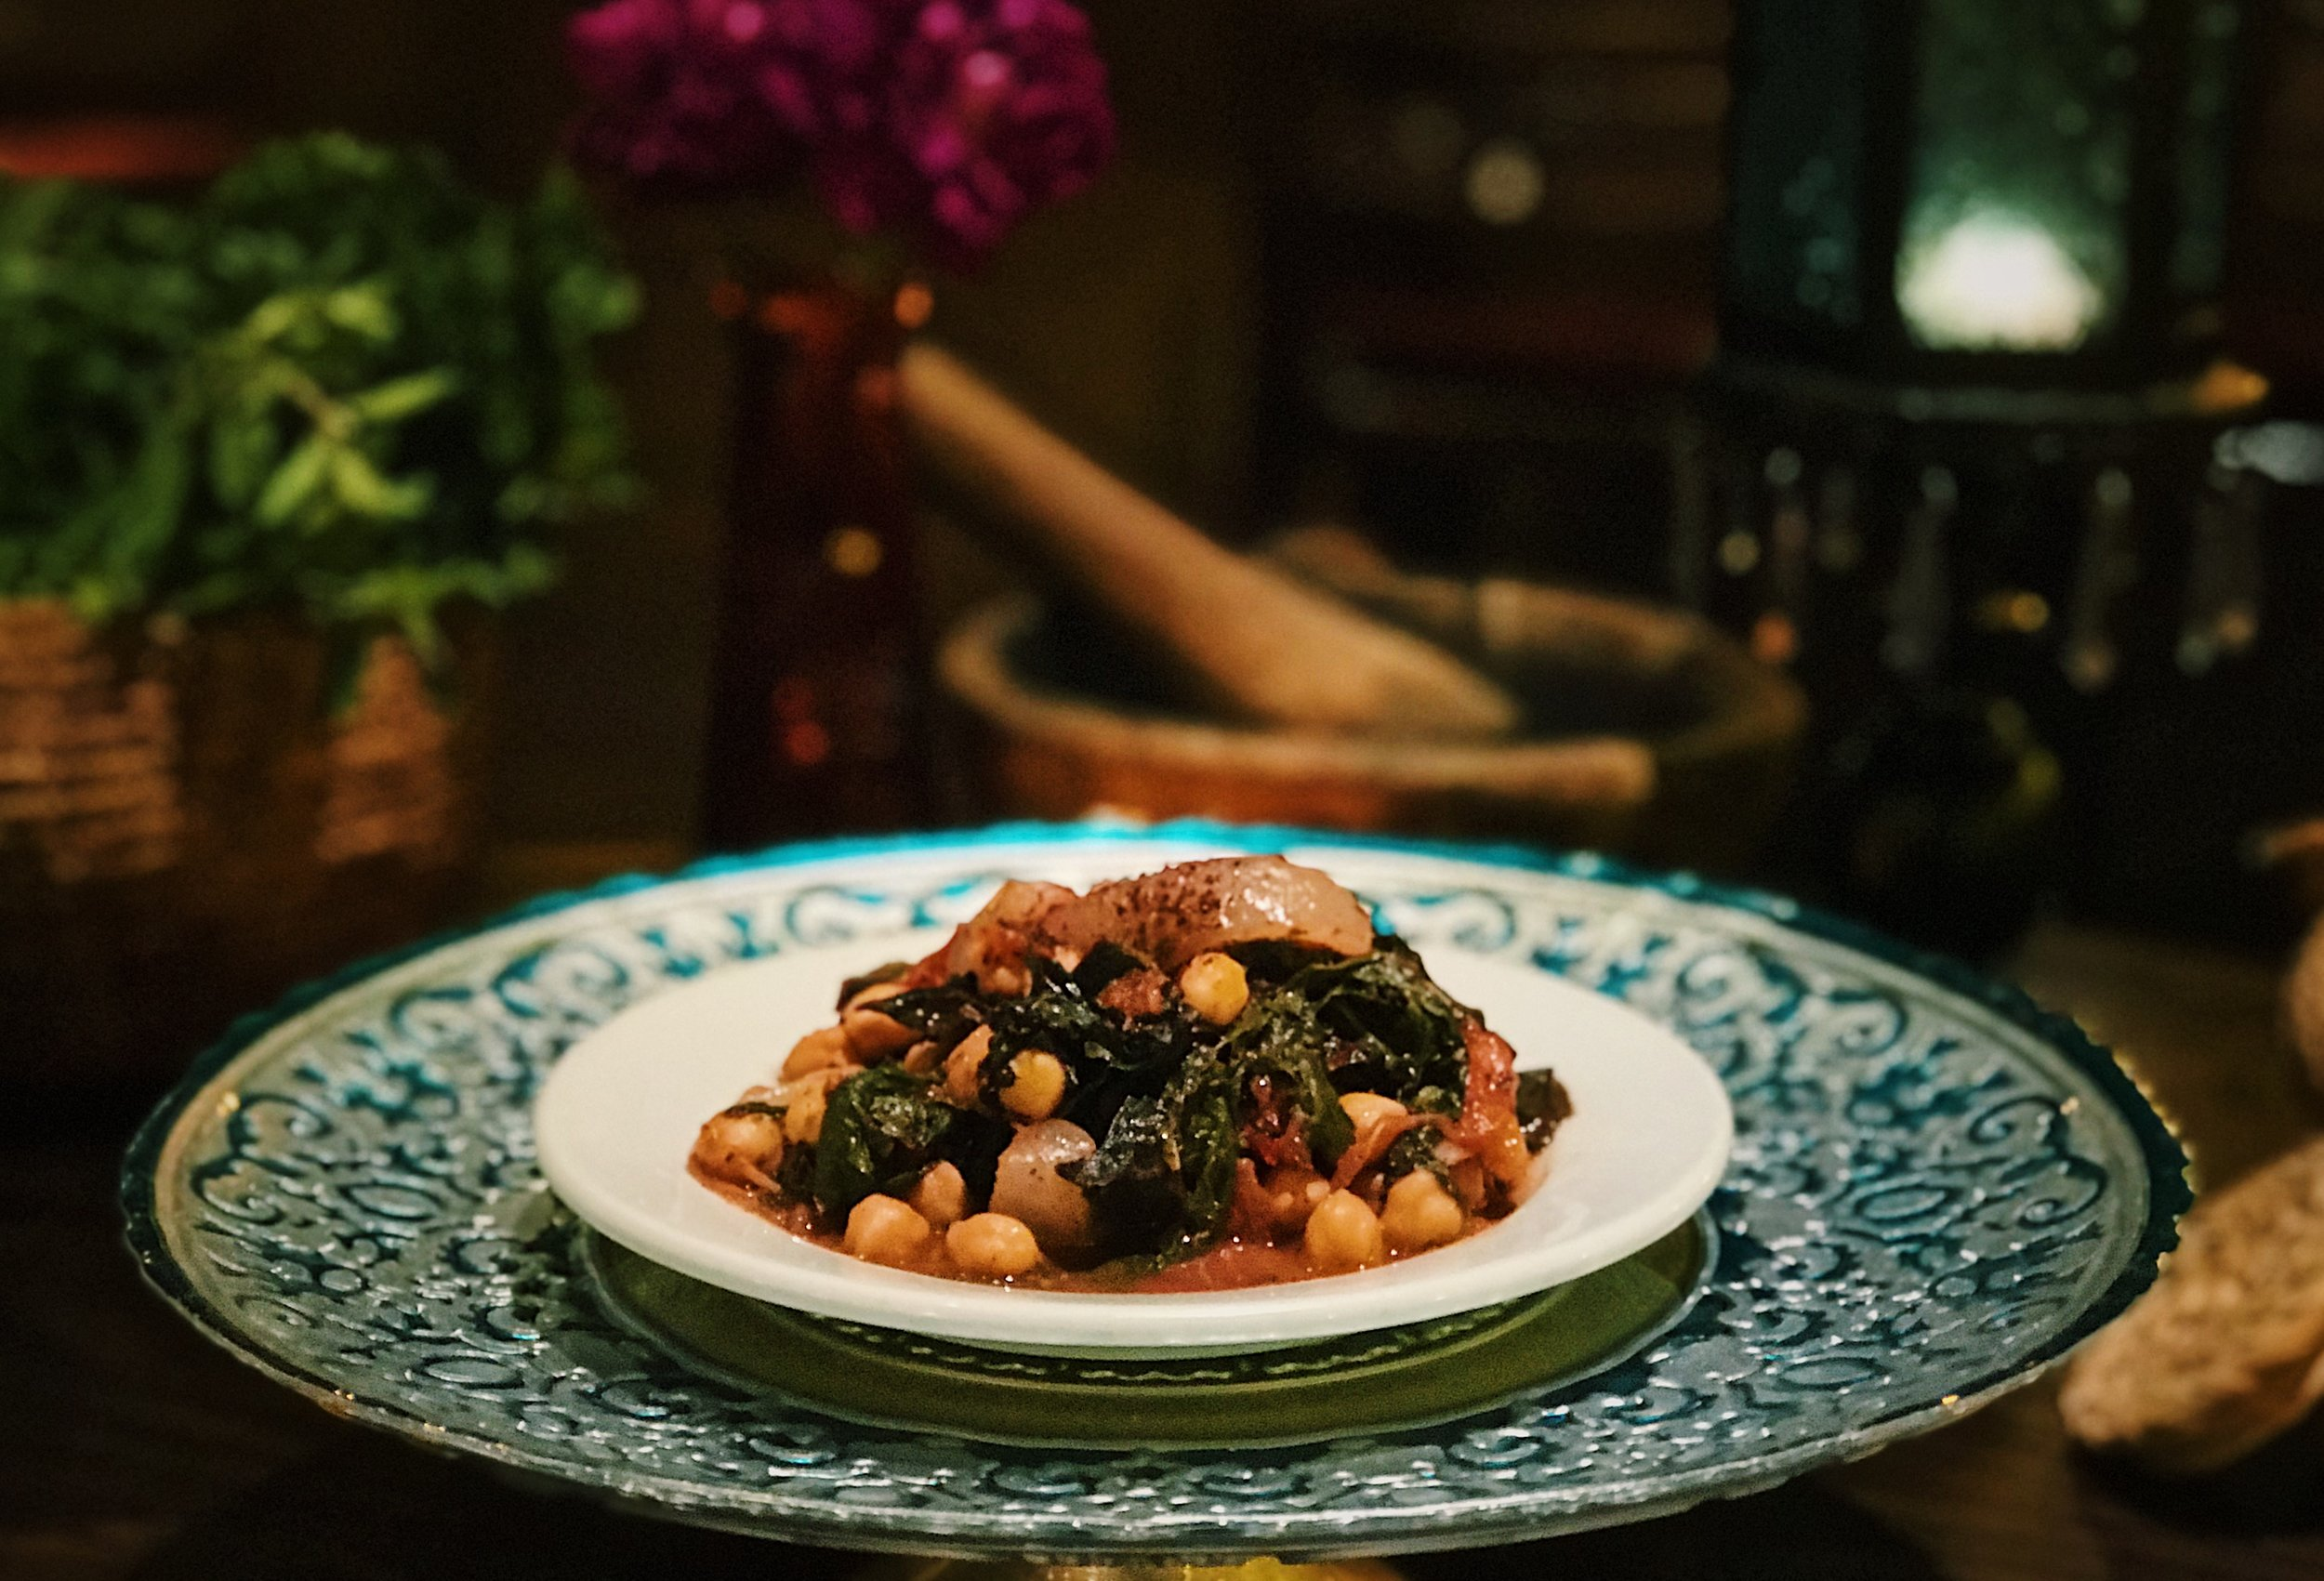 Swiss Chard & Chick Pea Salad